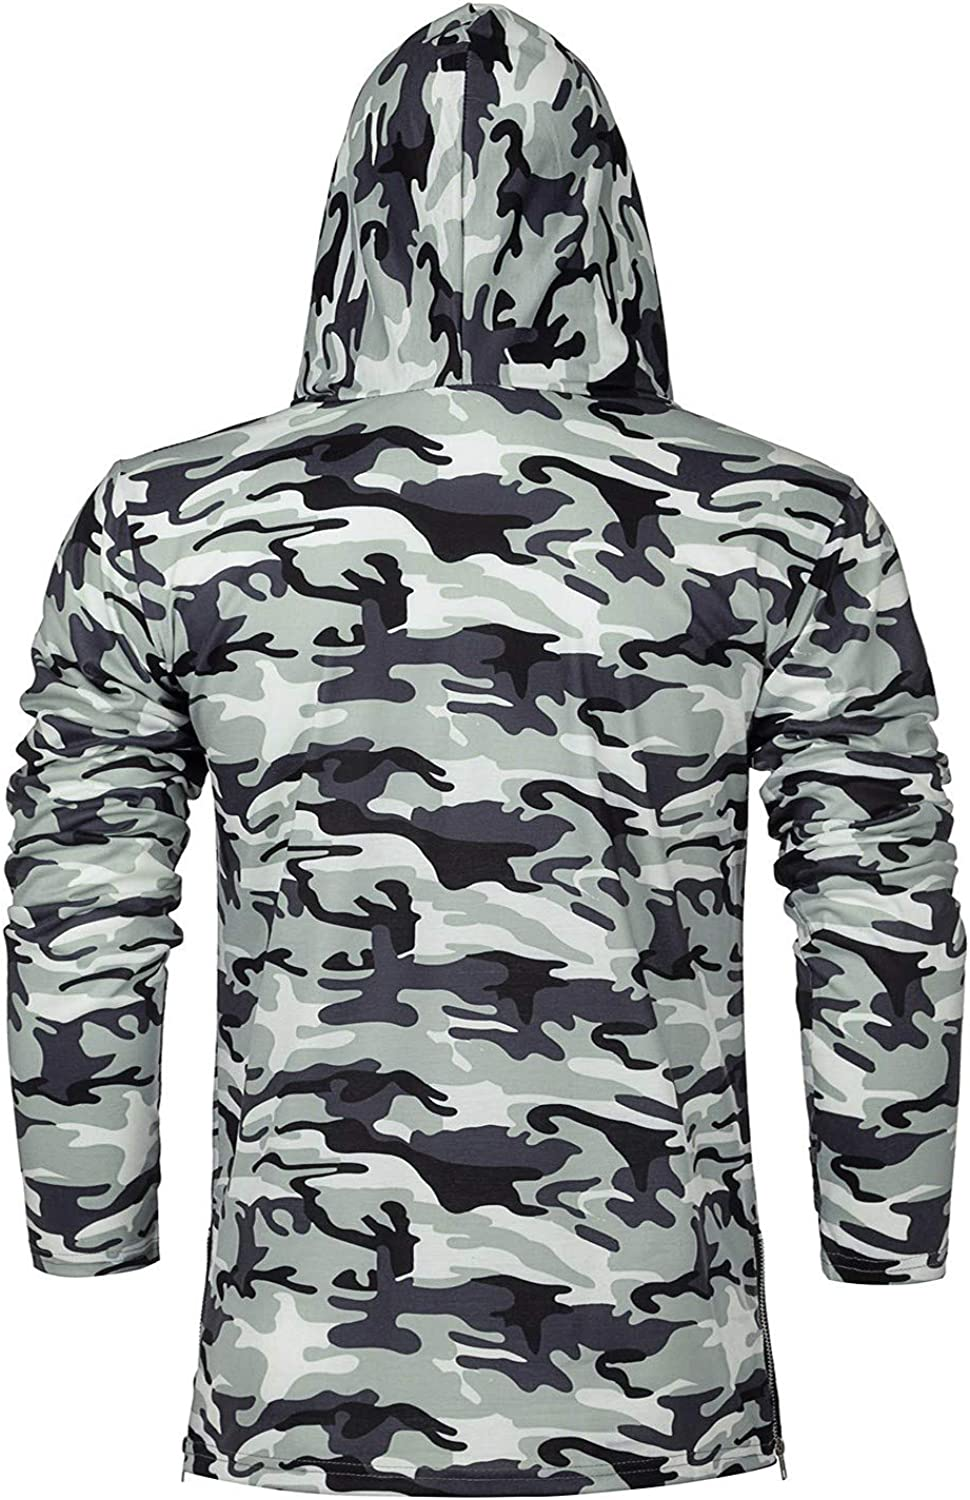 Mens Hoodie with Face Mask Turtleneck Compression Top Dry Baselayer Running Long Sleeve Thermal Sportwear